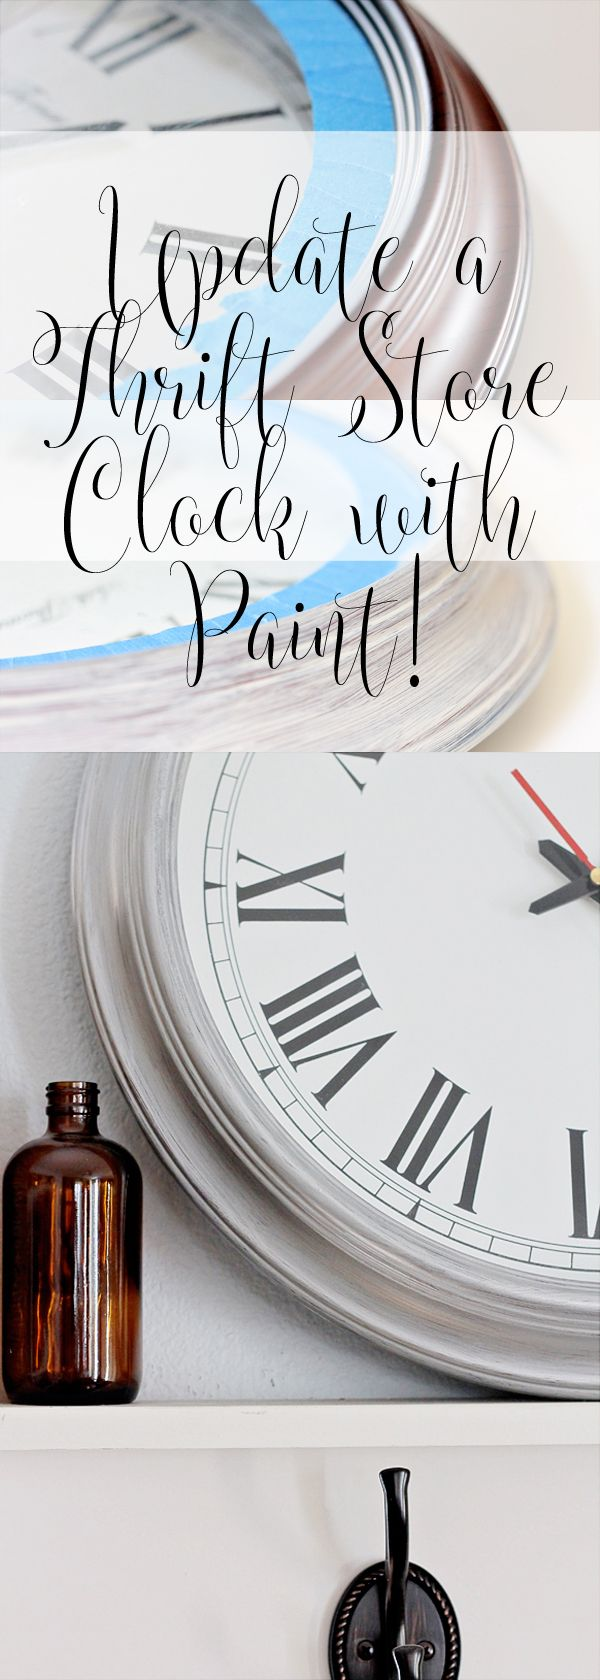 Update a dated clock with acrylic paint